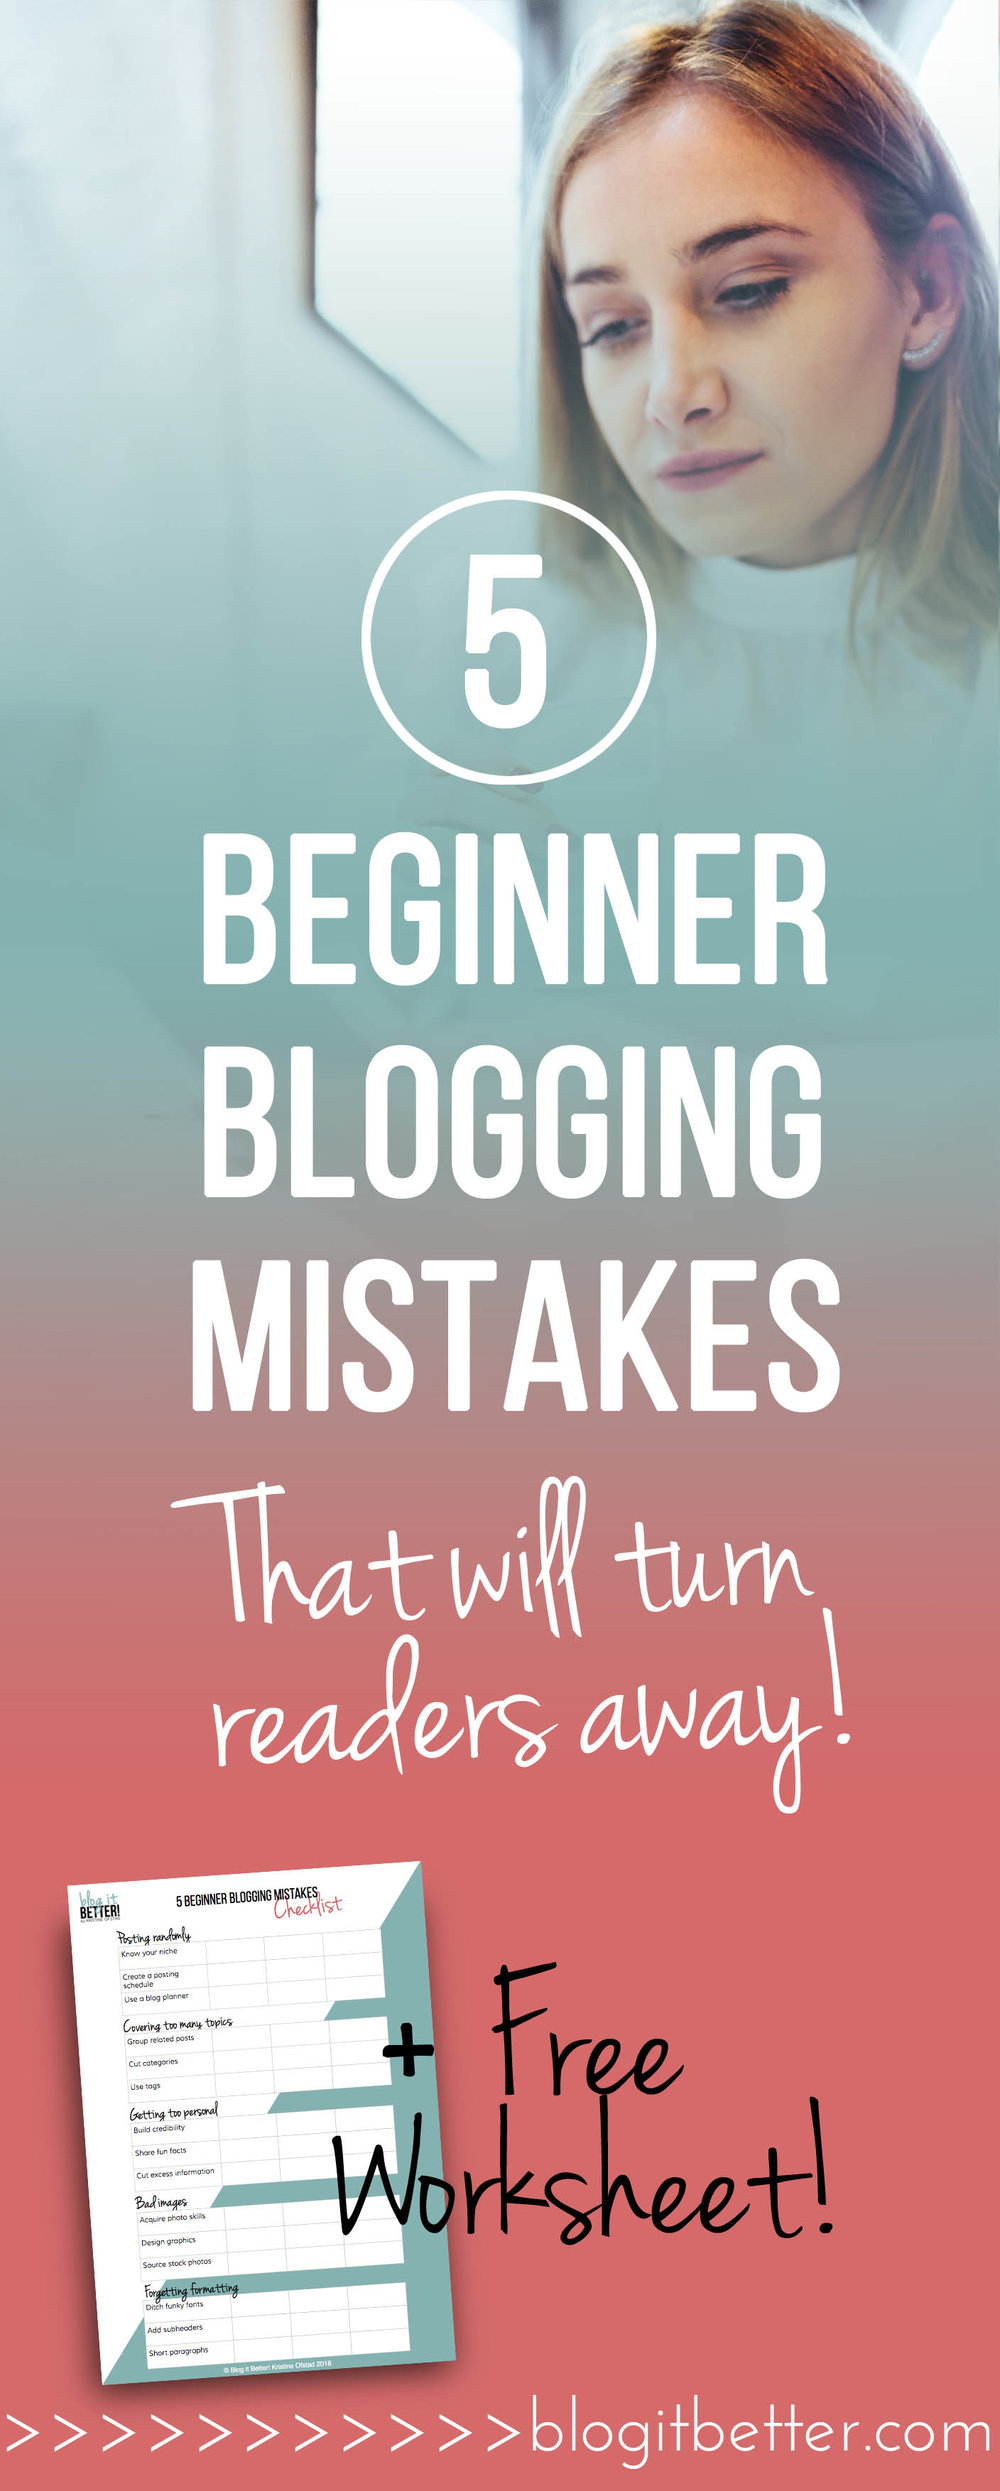 >>FREE Worksheet<< 5 Beginner Blogging Mistakes and How to Avoid Them! From Blog it Better! #bloggingmistakes #bloggingtips #blogitbetter #socialmediatips #blog #blogger #bloggingforbeginners #blogideas #bloggingformoney #freedownload